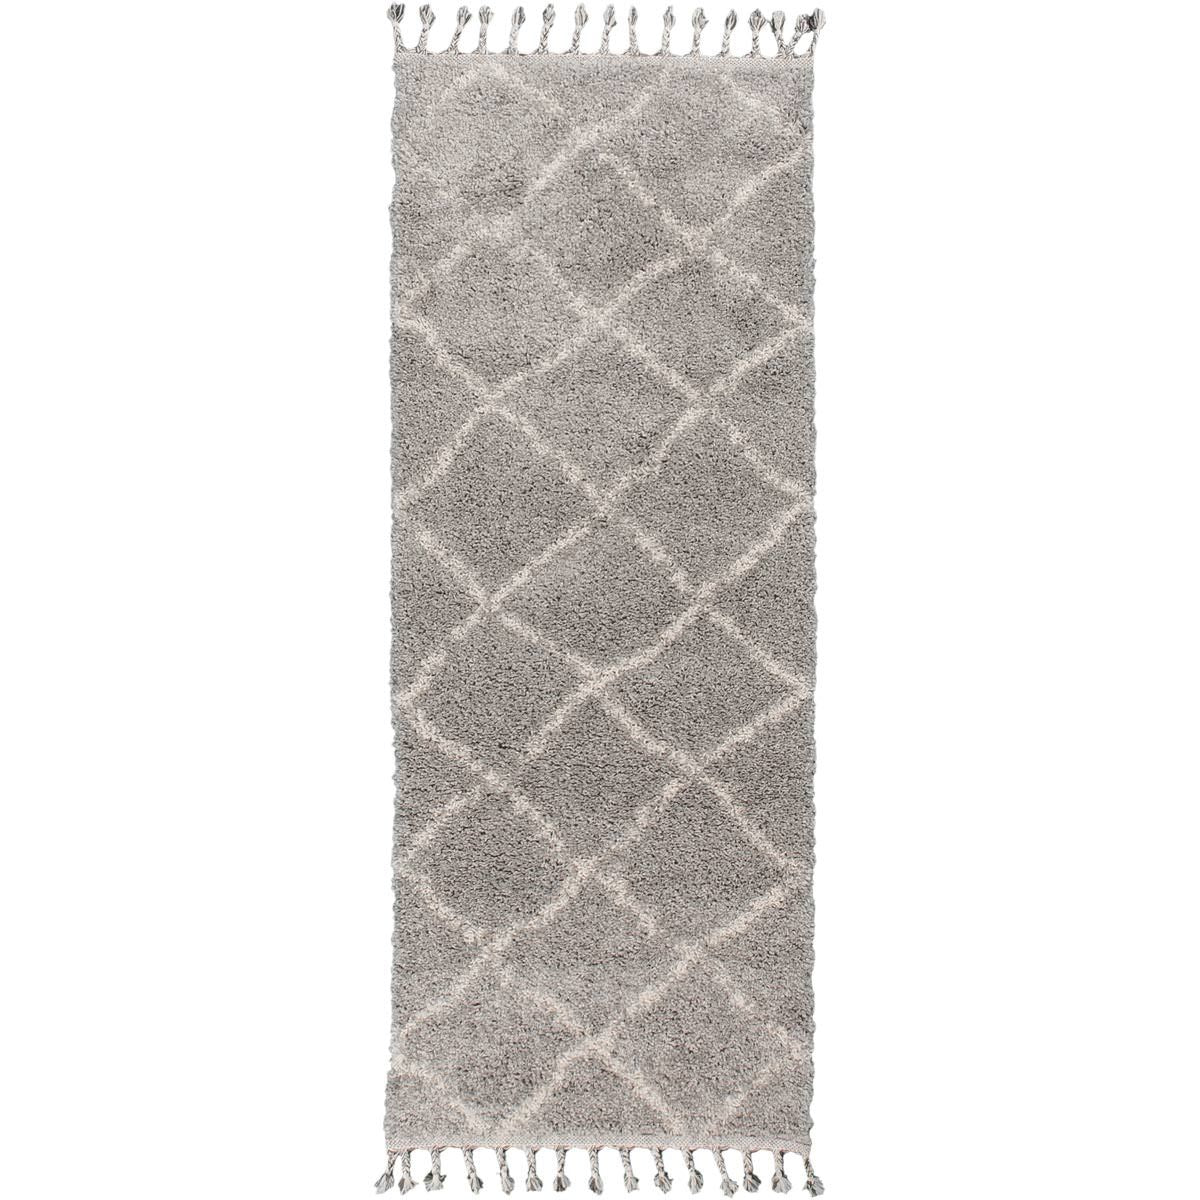 Shaggy Marrakech Rug 07 Grey/Cream Runner 1